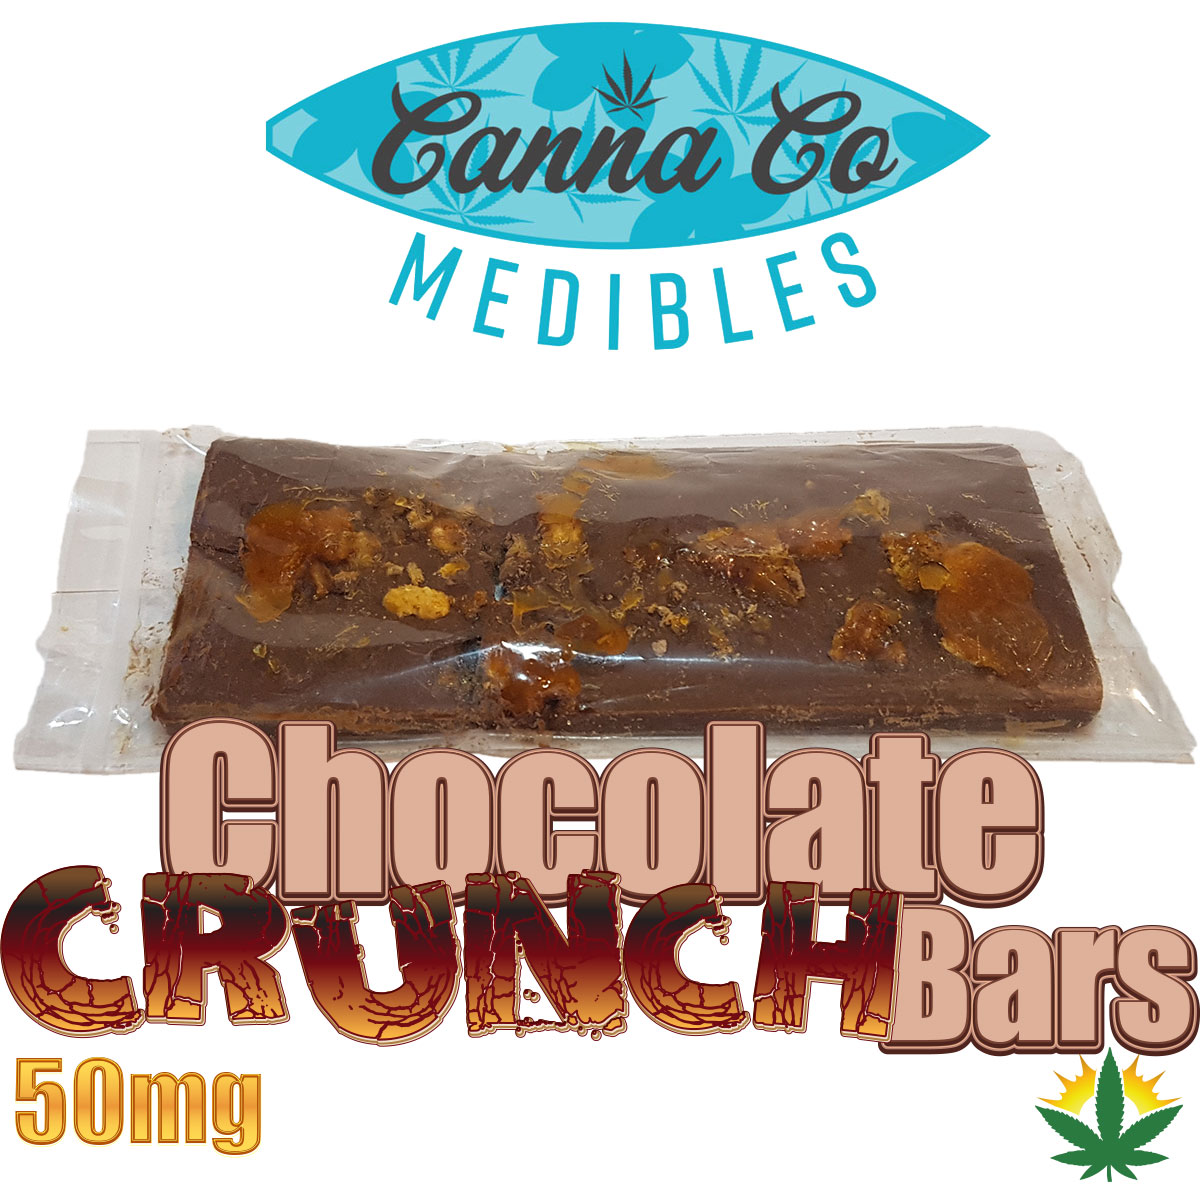 CannaCo THC Chocolate Crunch Bars by BC Bud Store - Image © 2018 BC Bud Store. All Rights Reserved.